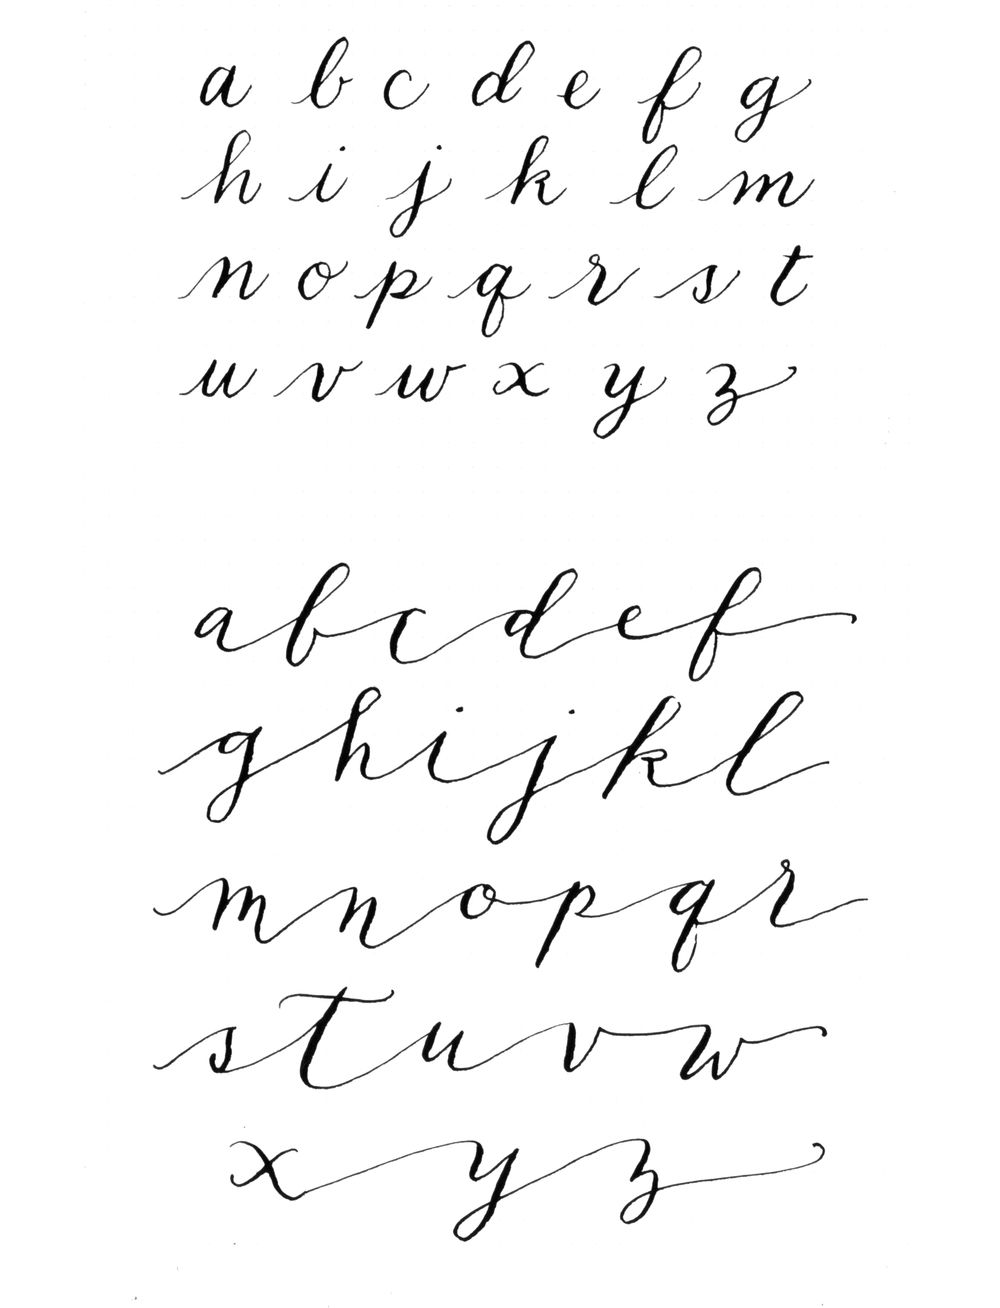 I Cant Remember The Last Time Sat Down And Just Wrote Out Alphabet Sometimes Its Nice To See Letters Arranged In This Way